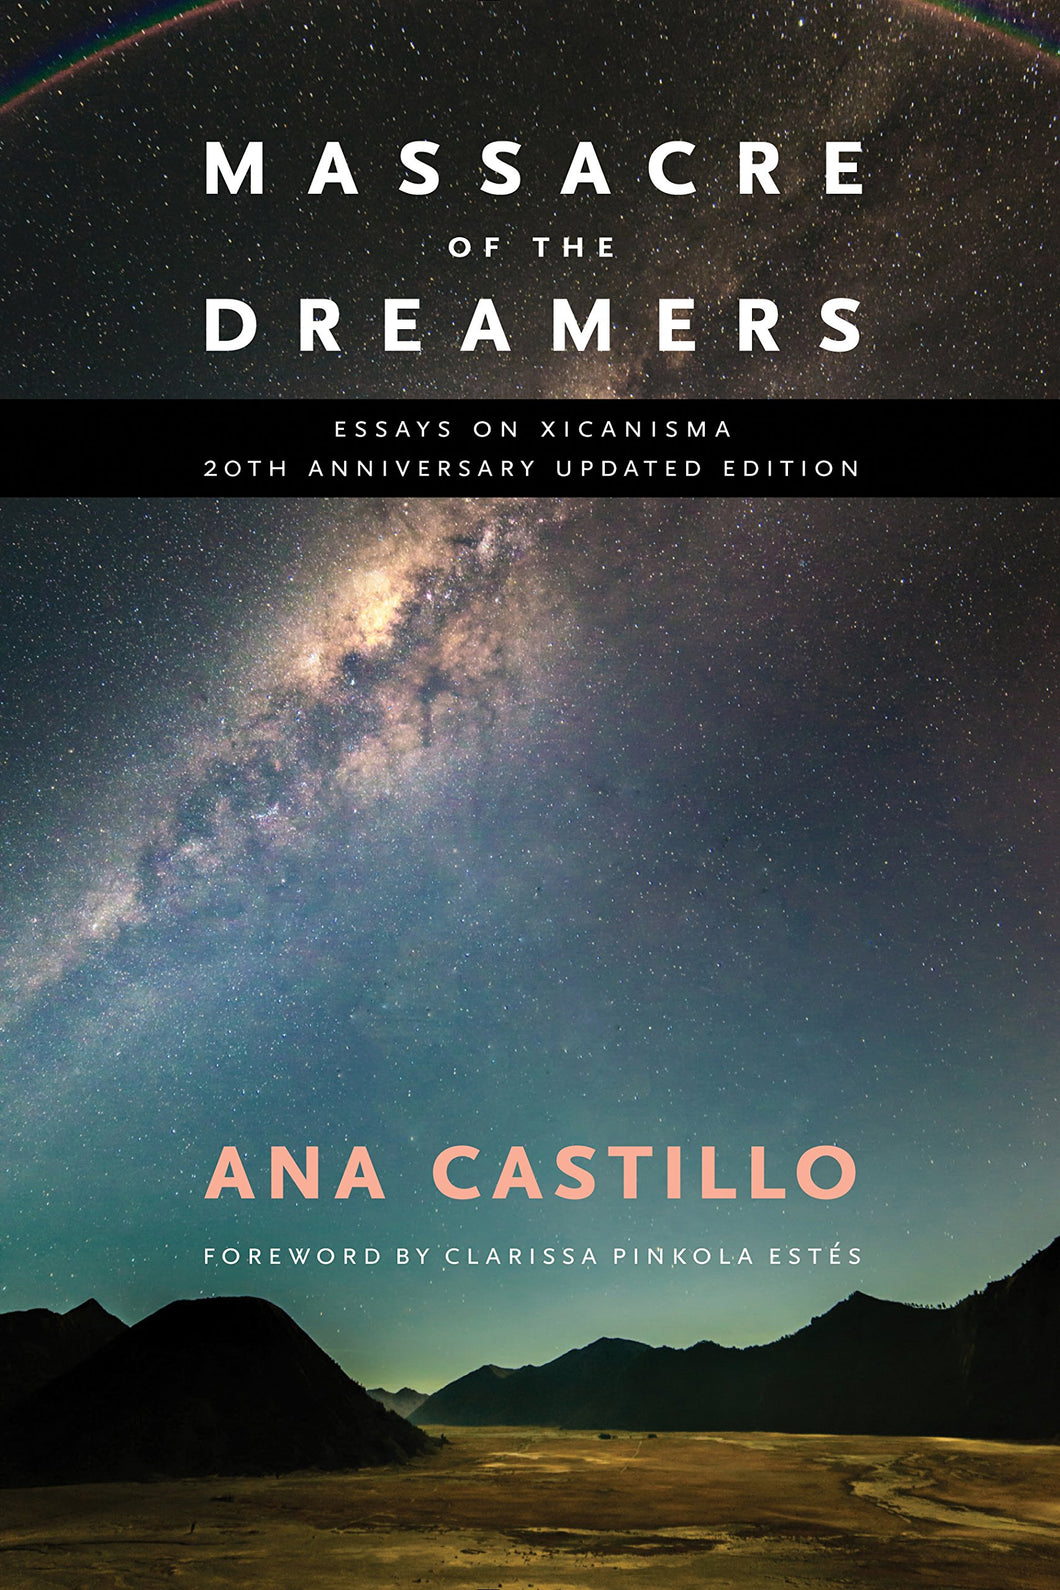 Massacre of the Dreamers: Essays on Xicanisma by Ana Castillo